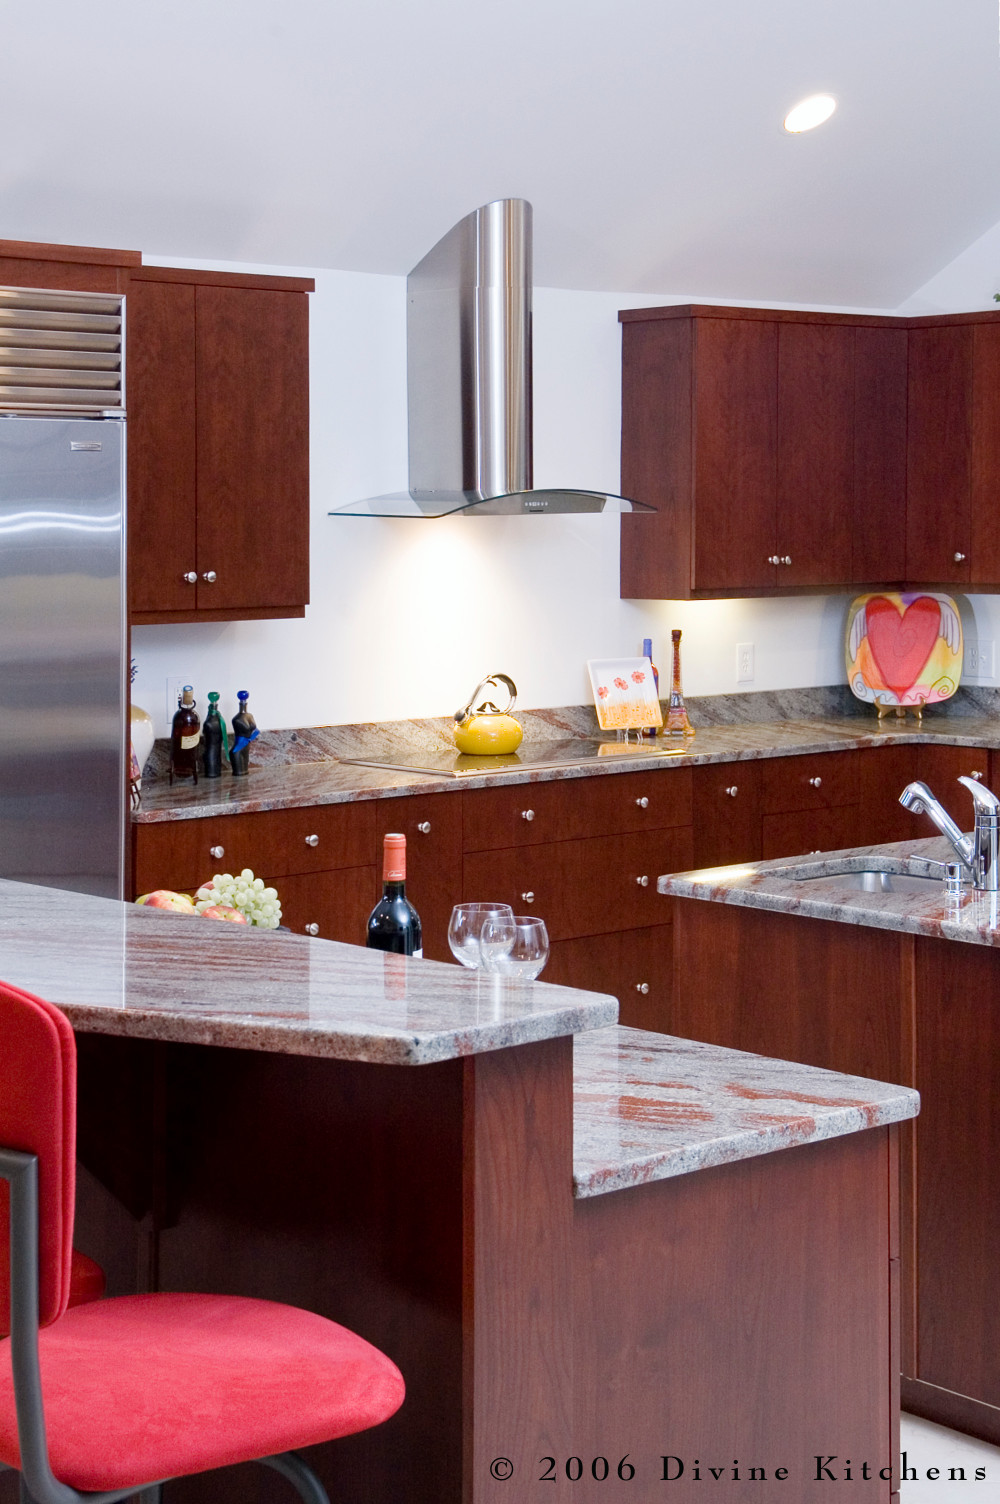 Etonnant Modern Cherry Wood Cabinet Kitchen With Brushed Nickel Knobs. Marble  Countertops With Red And Pink